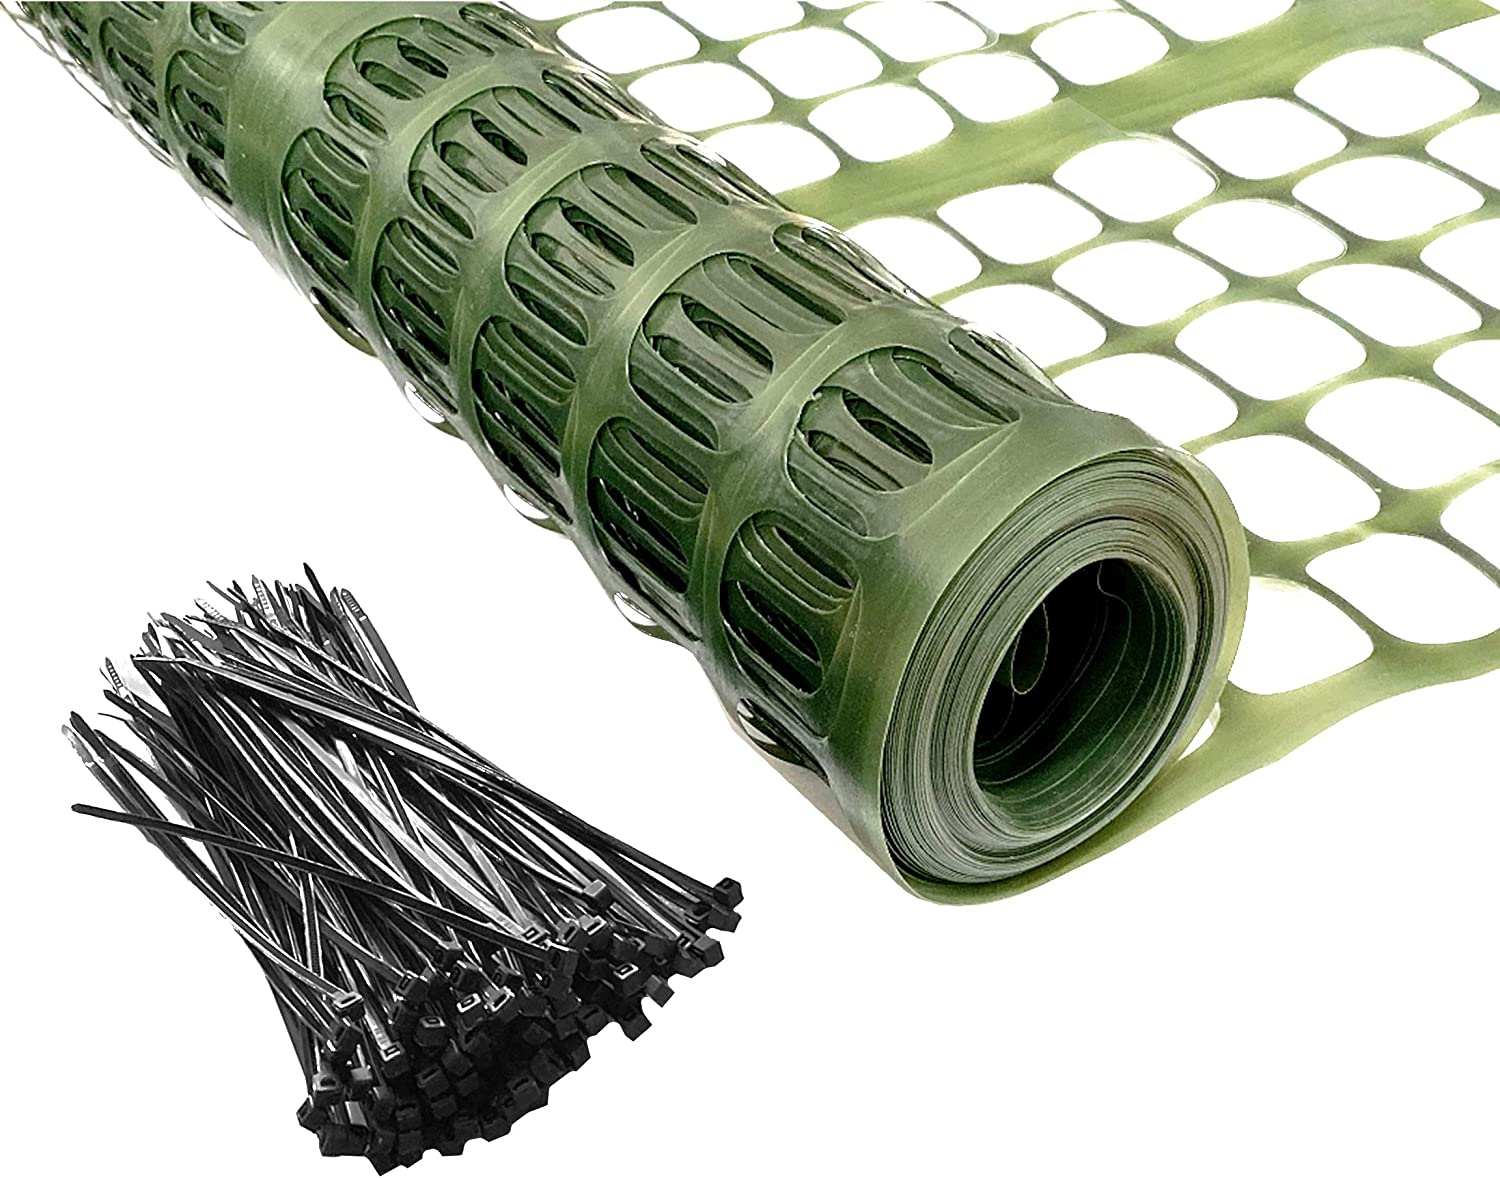 PeerBasics Patio Snow Garden Fencing, Lightweight Safety Netting, Recyclable Plastic Barrier Environmental Protection, Dark Green (with Zip Ties, 2 x 50)